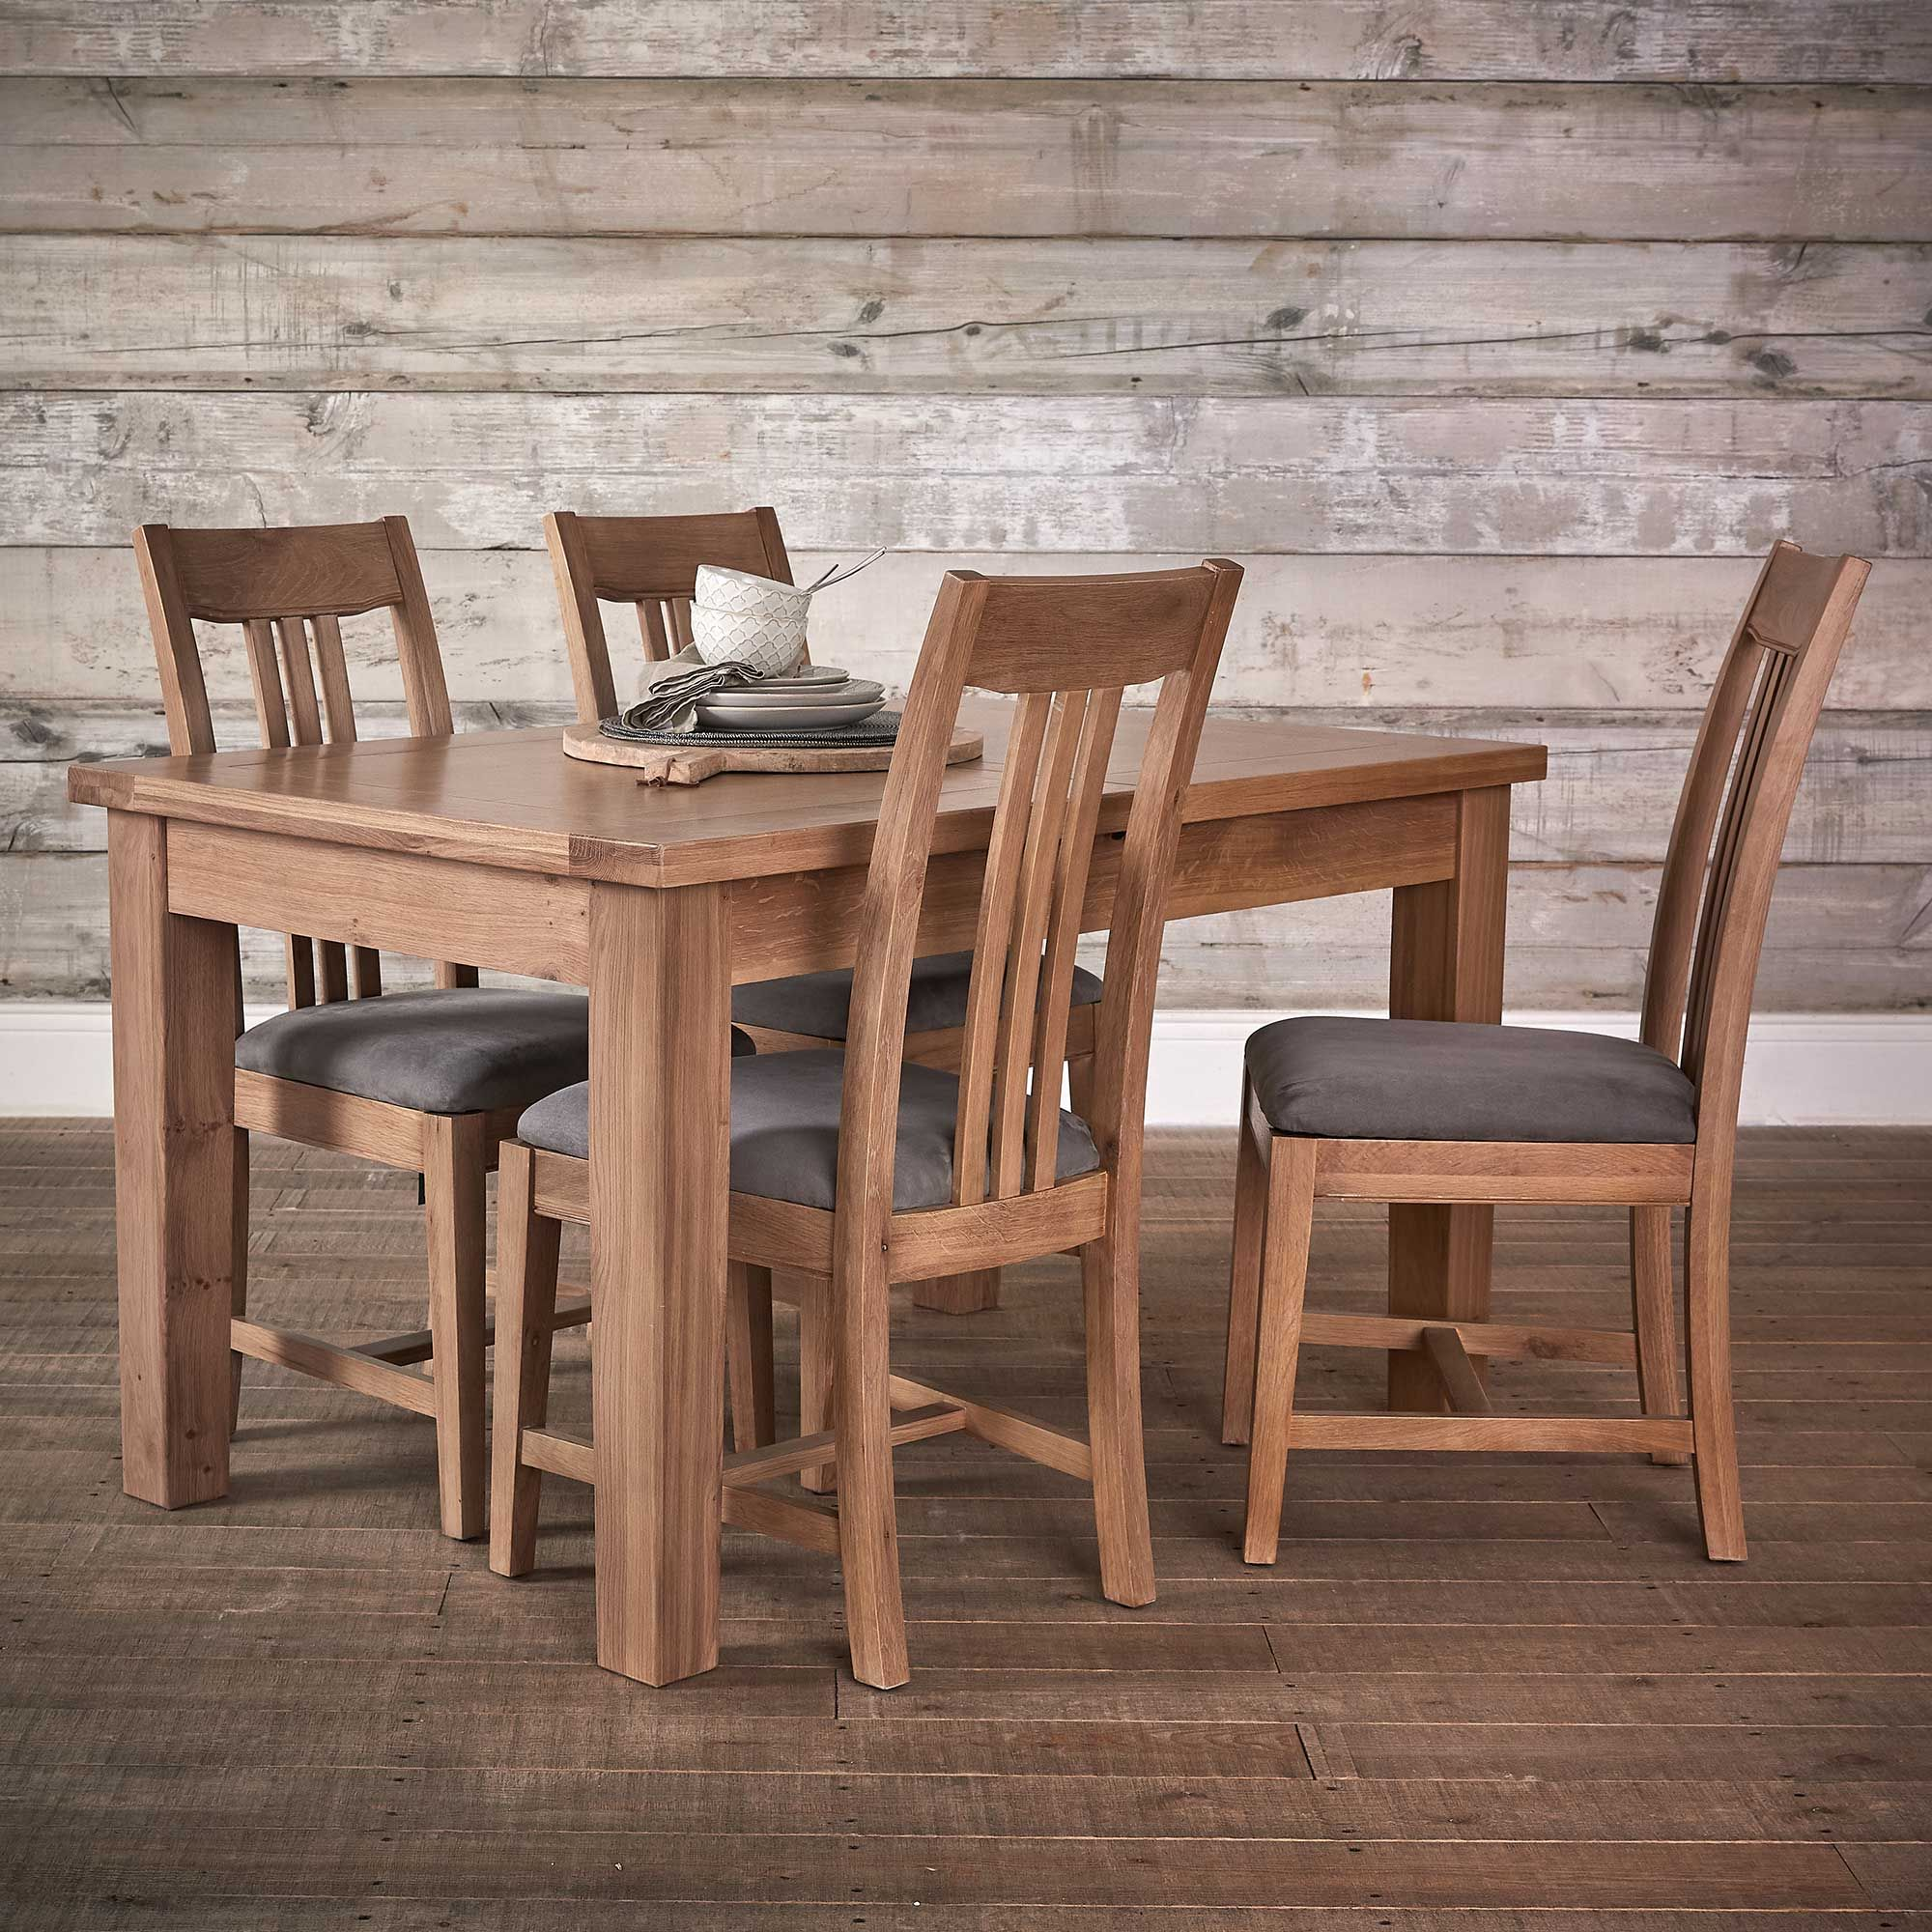 Ripley Large Extending Dining Table And Oak Dining Chairs With - Washed oak dining table and chairs